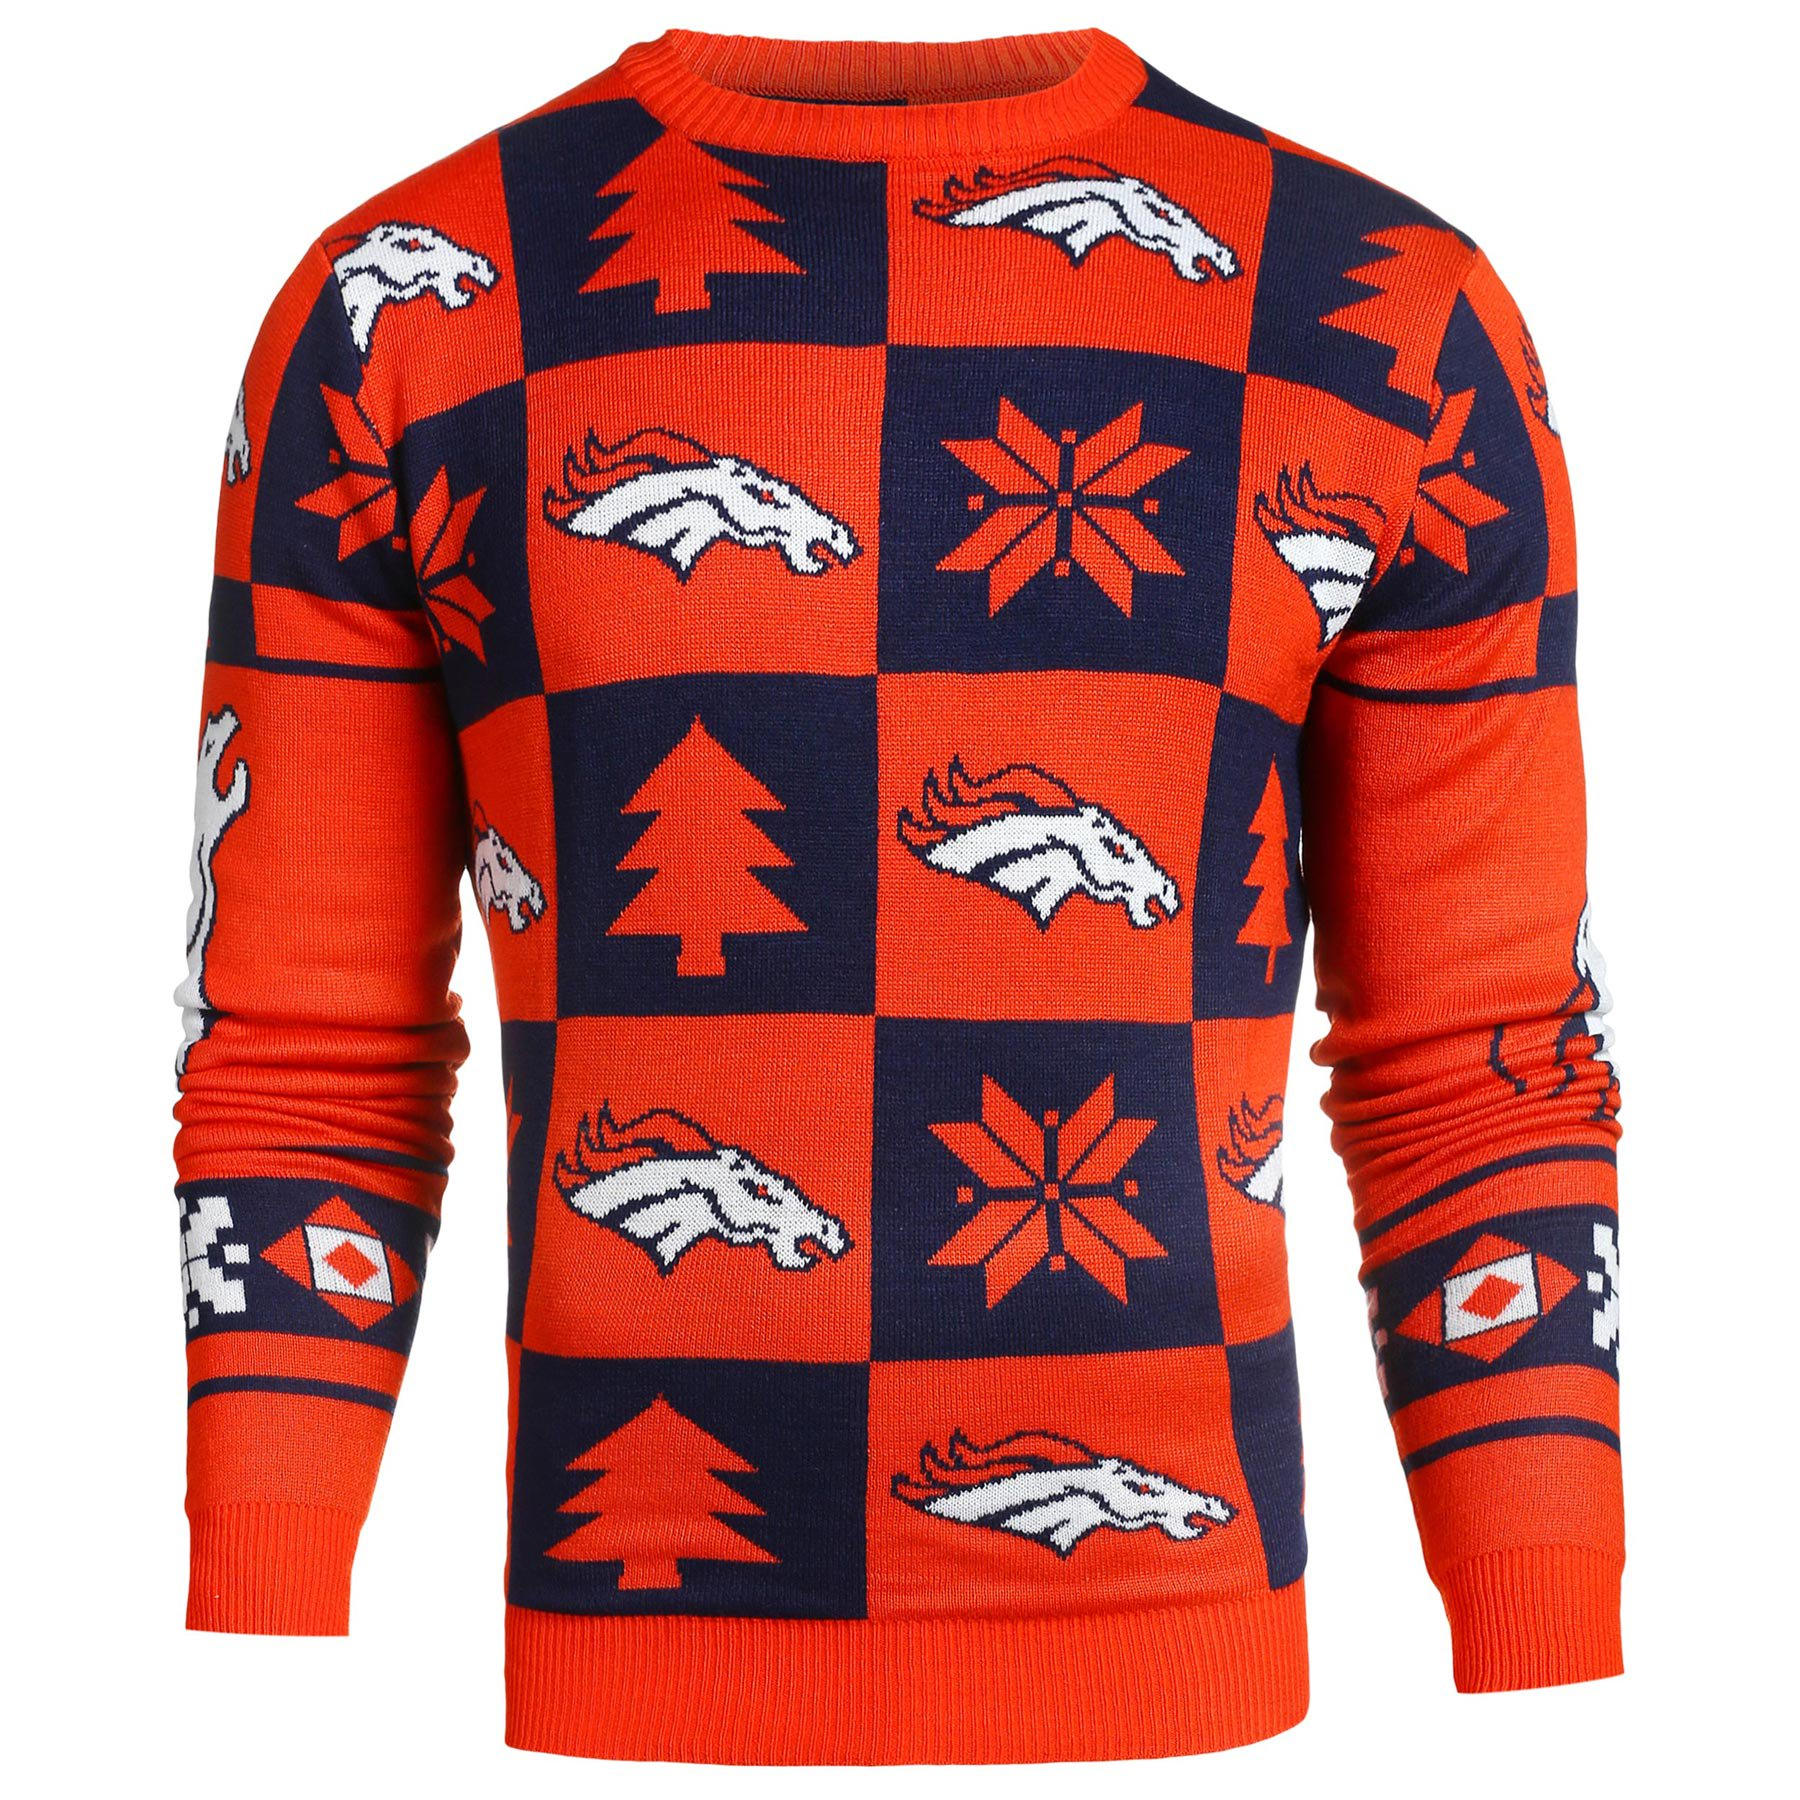 best service 2dd2b 211fb Denver Broncos NFL Patches Ugly Crewneck Sweater - Klew ...